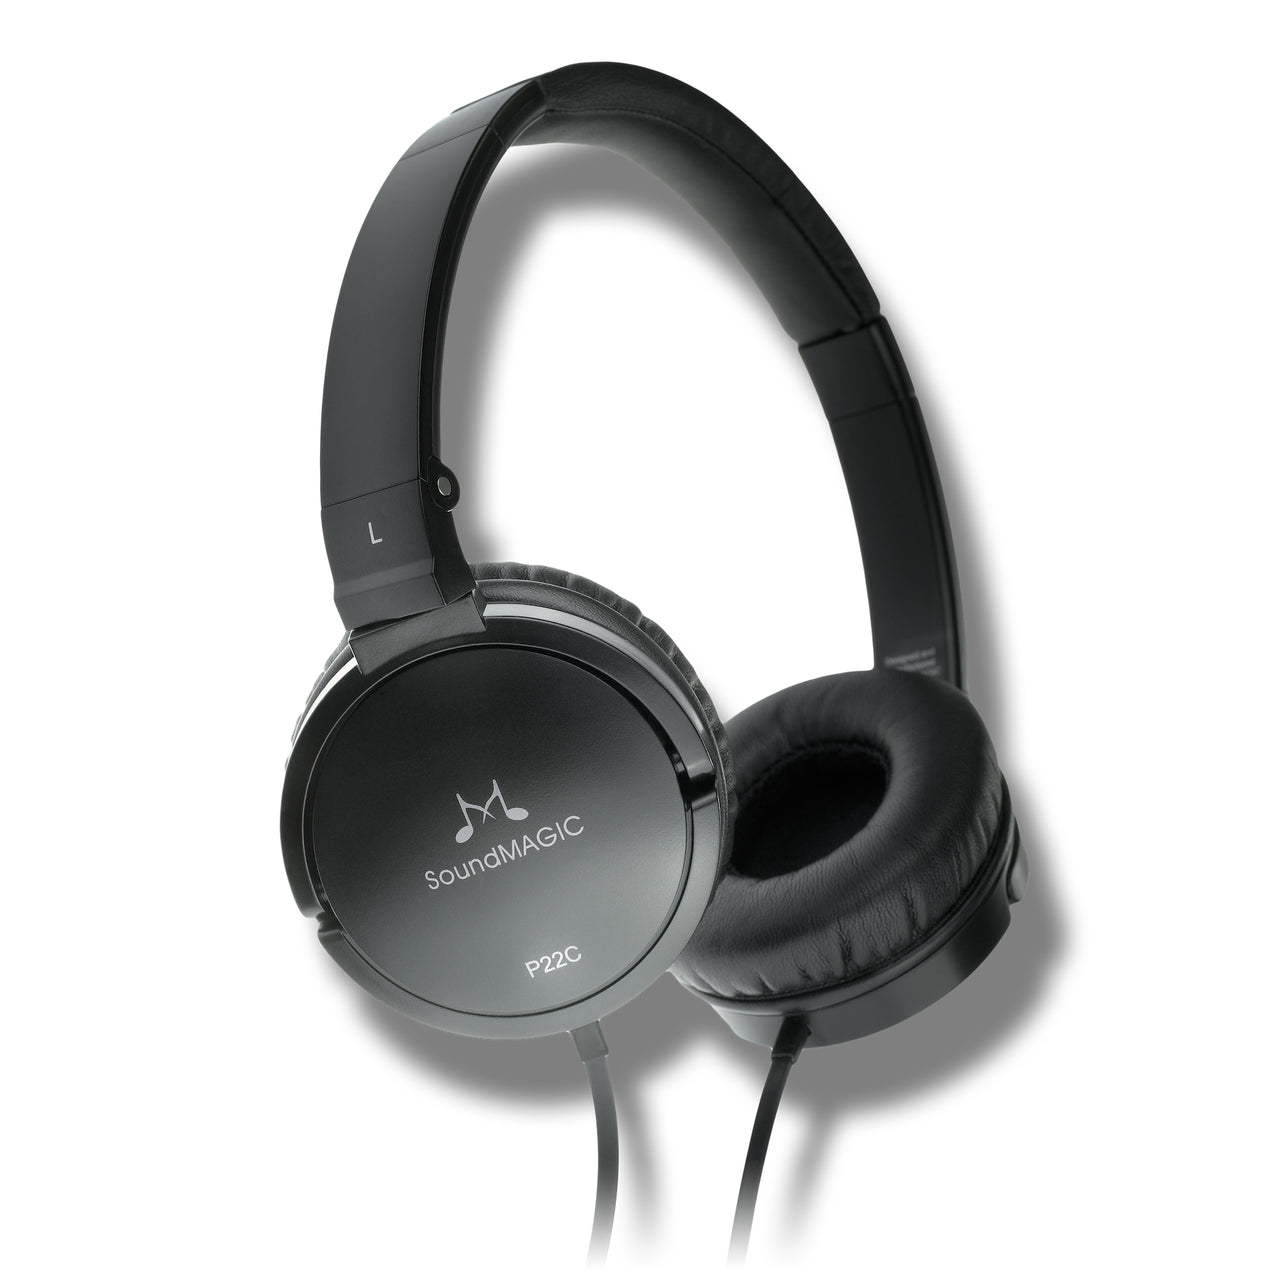 SoundMAGIC P22C Portable Headphones with Universal Smartphone Controls & Mic - SoundMAGICheadphones.com